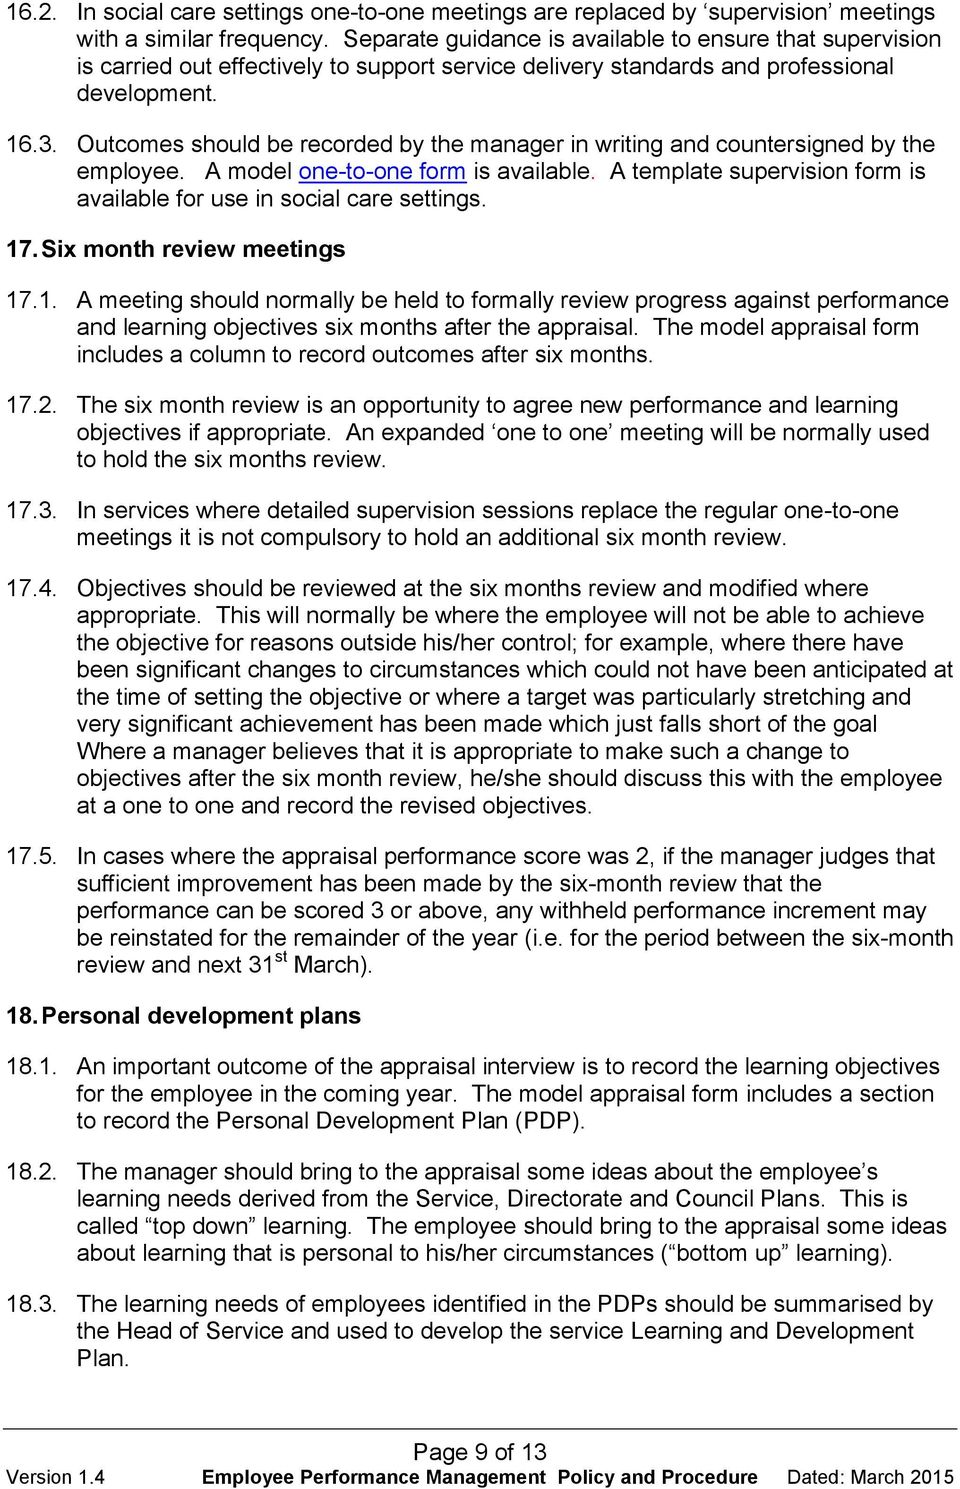 Employee Performance Management Policy and Procedure - PDF